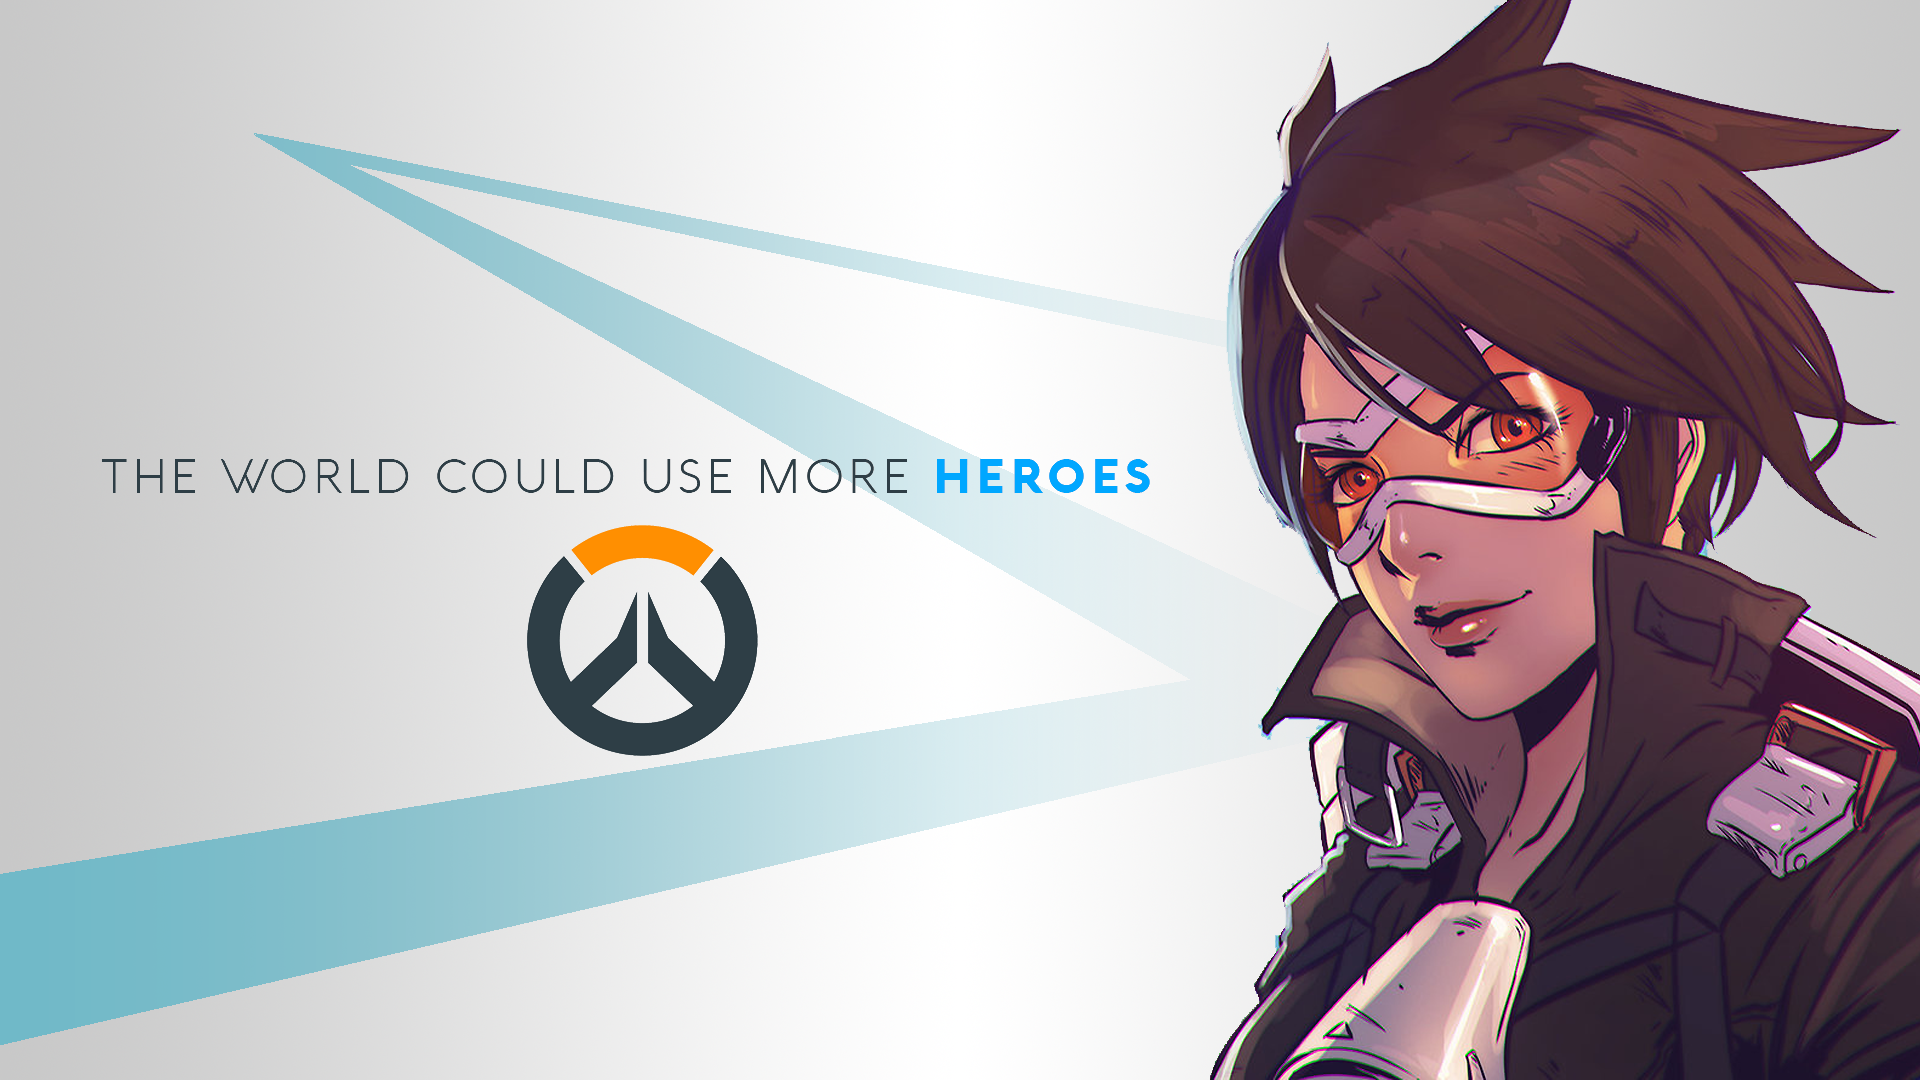 Simple Wallpaper High Quality Overwatch - 7f1b541d808554dfab859a405c320c3d  Snapshot_444064.png